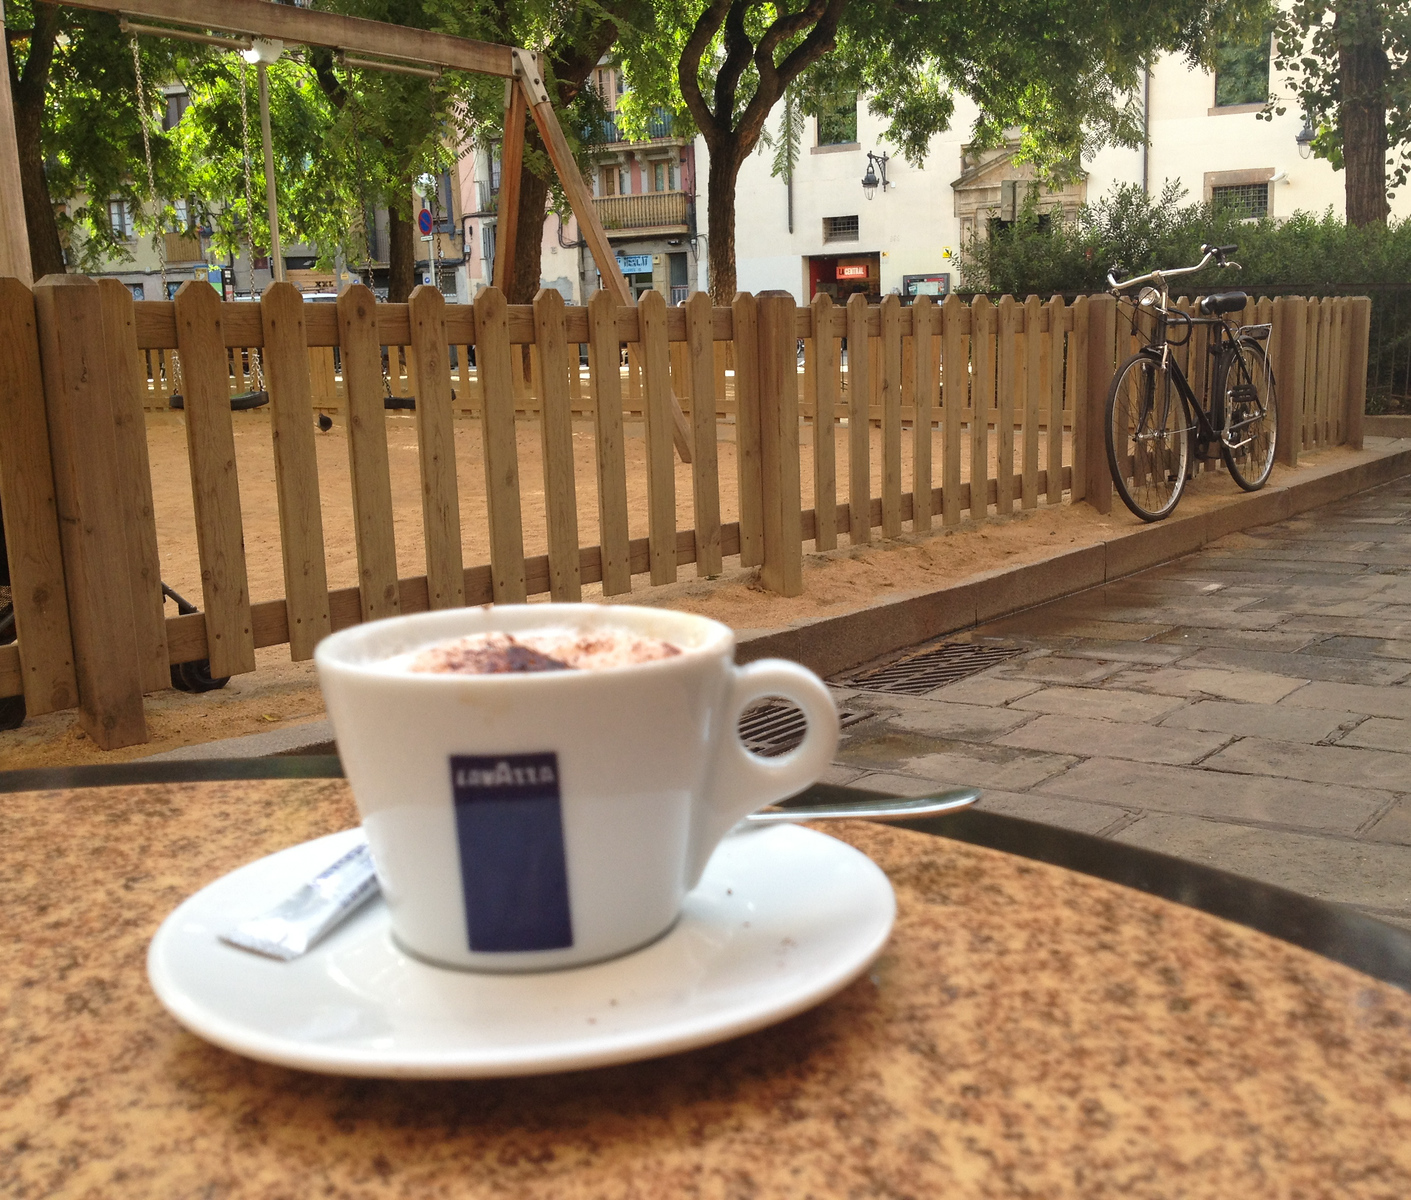 Cofee on a table at an outdoor cafe in Barcelona.